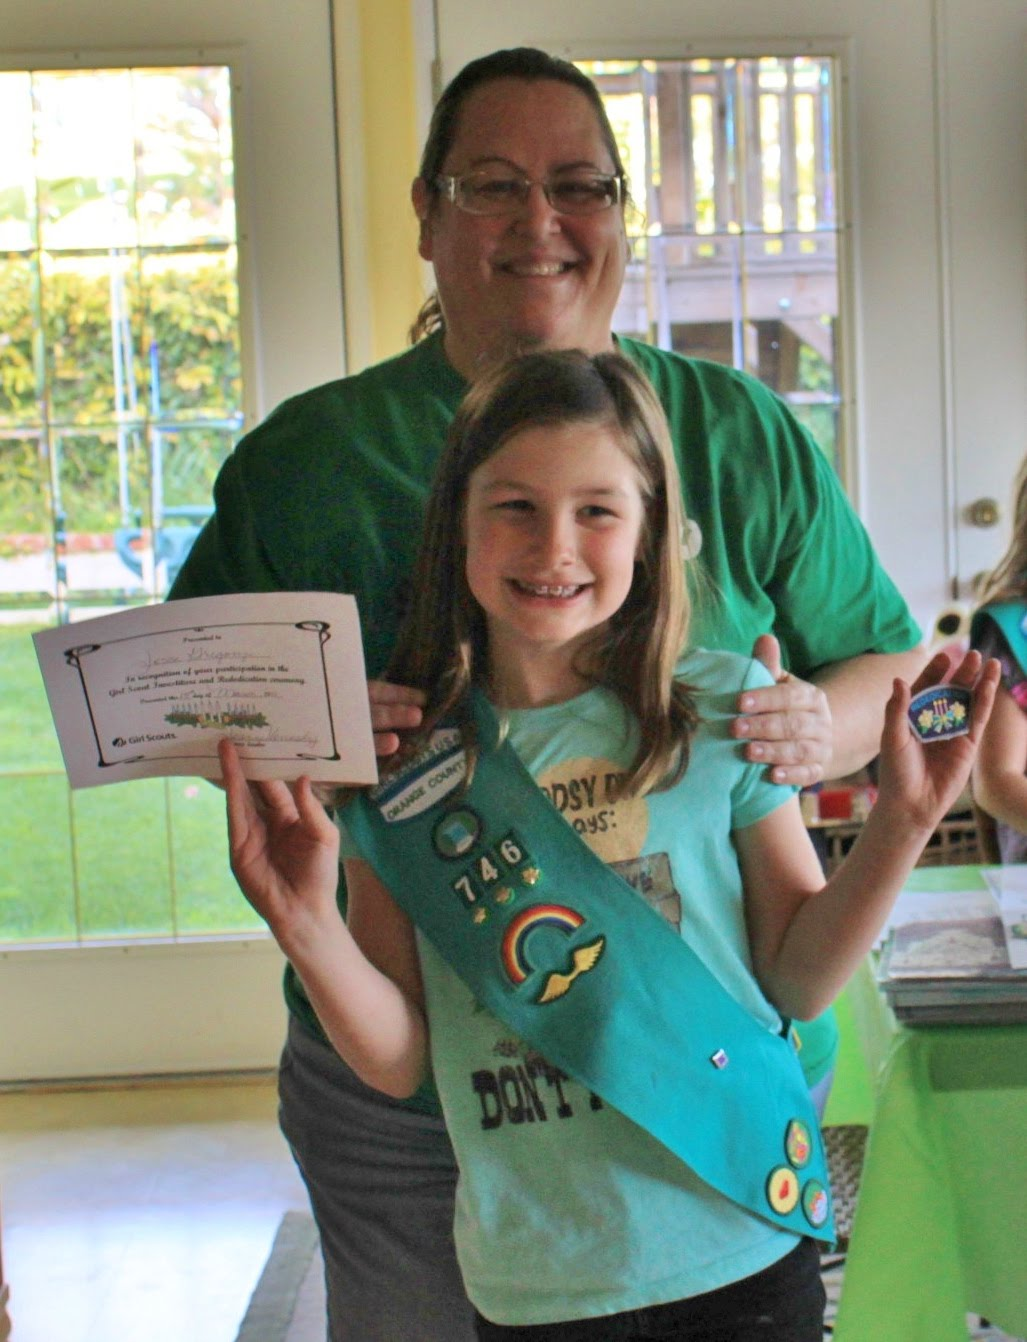 Jesse was also happy about rededicating herself to Girl Scouts and ...